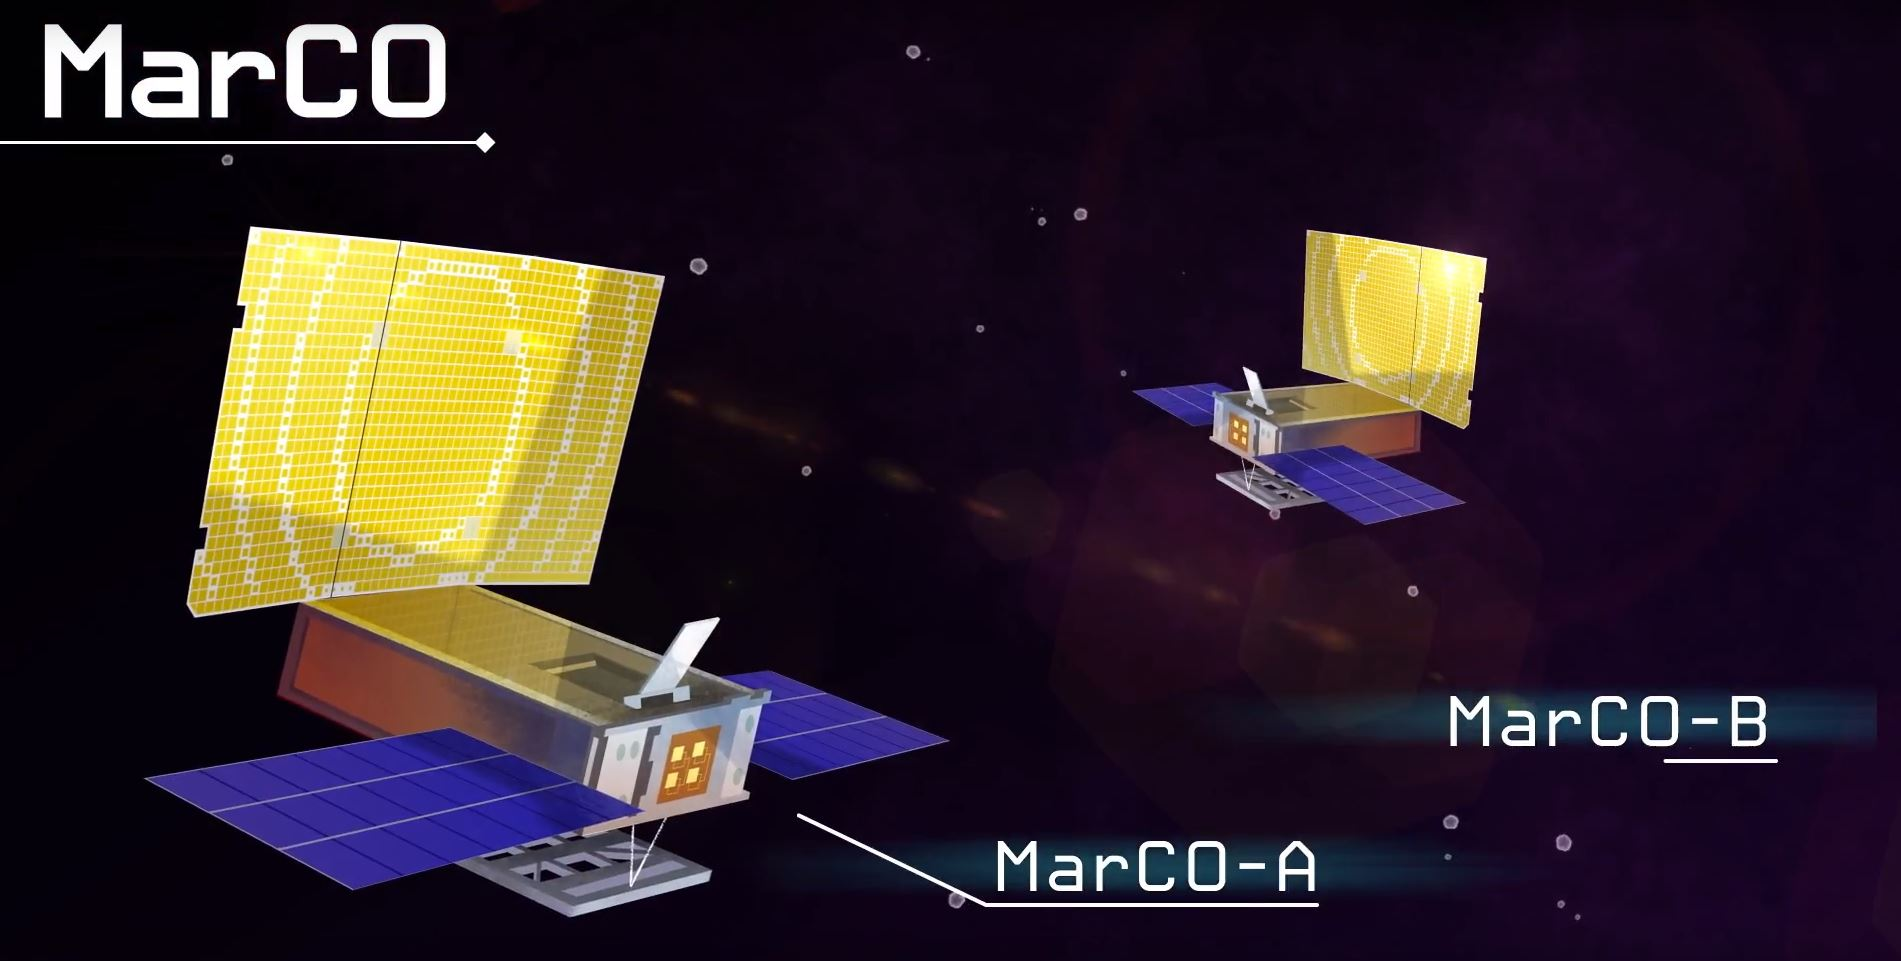 see the video 'NASA's First Deep Space CubeSats'